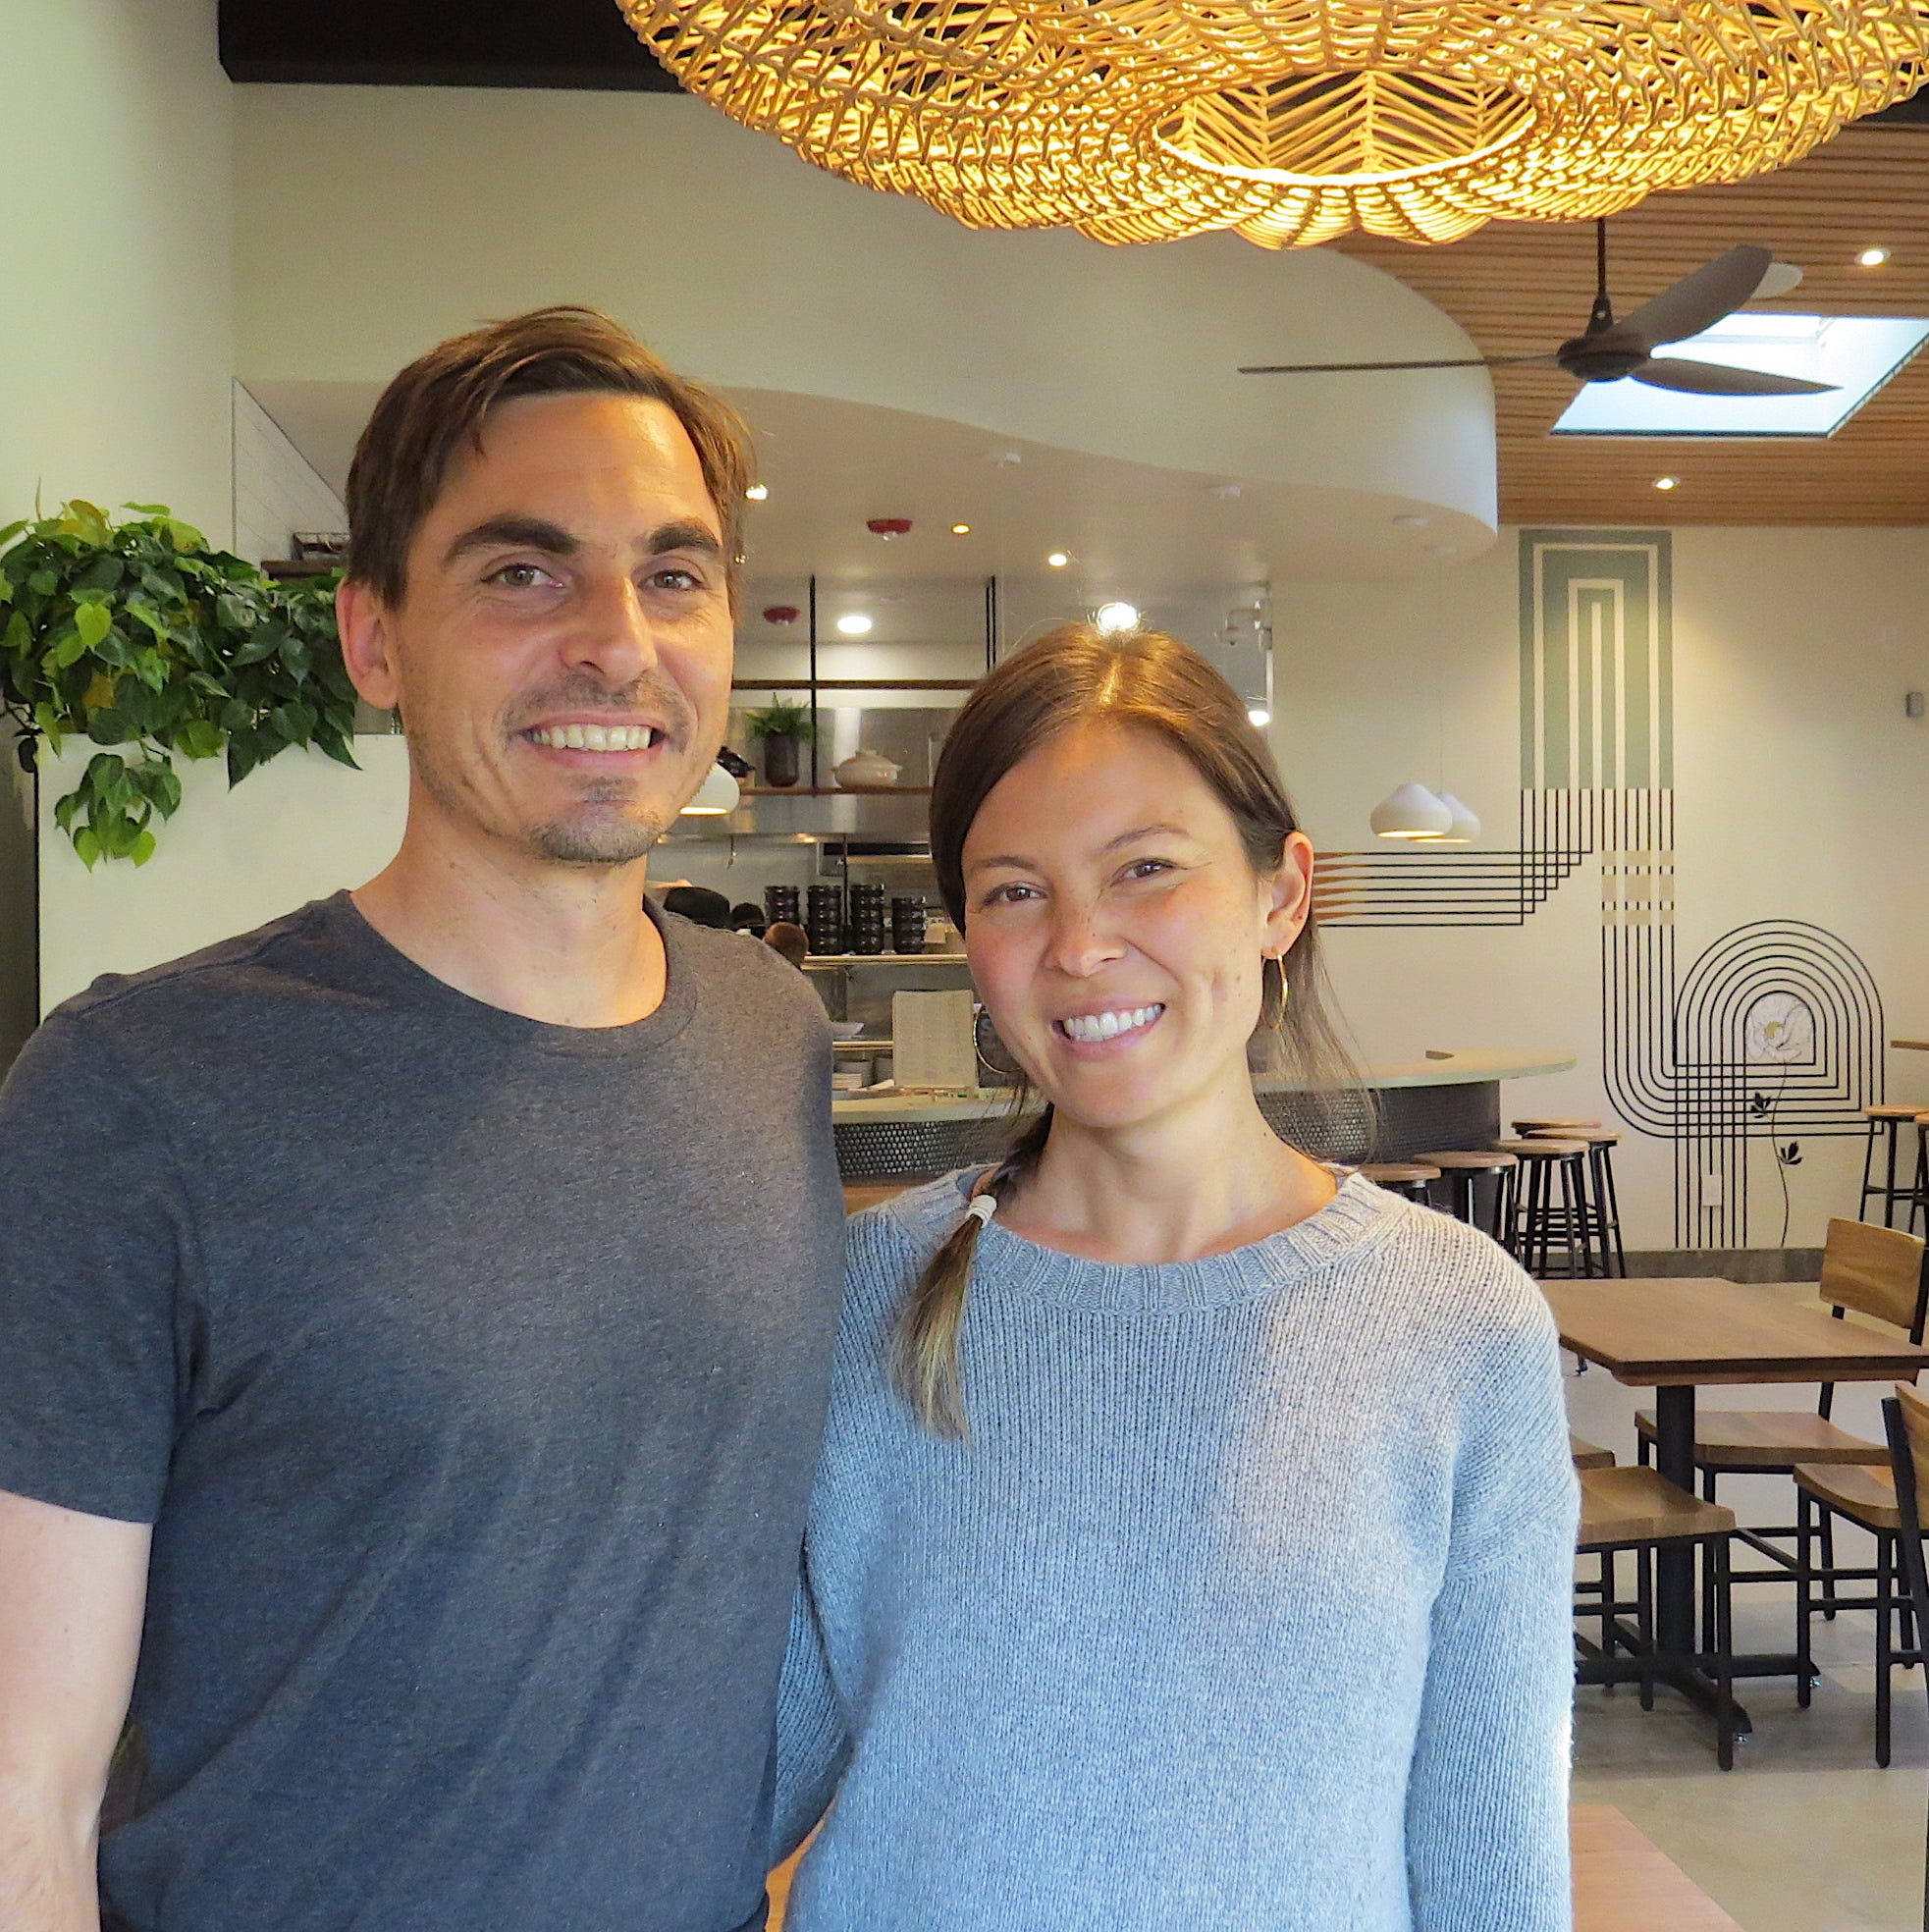 Open and shut: Hip Vegan returns to Ojai, but at a new address